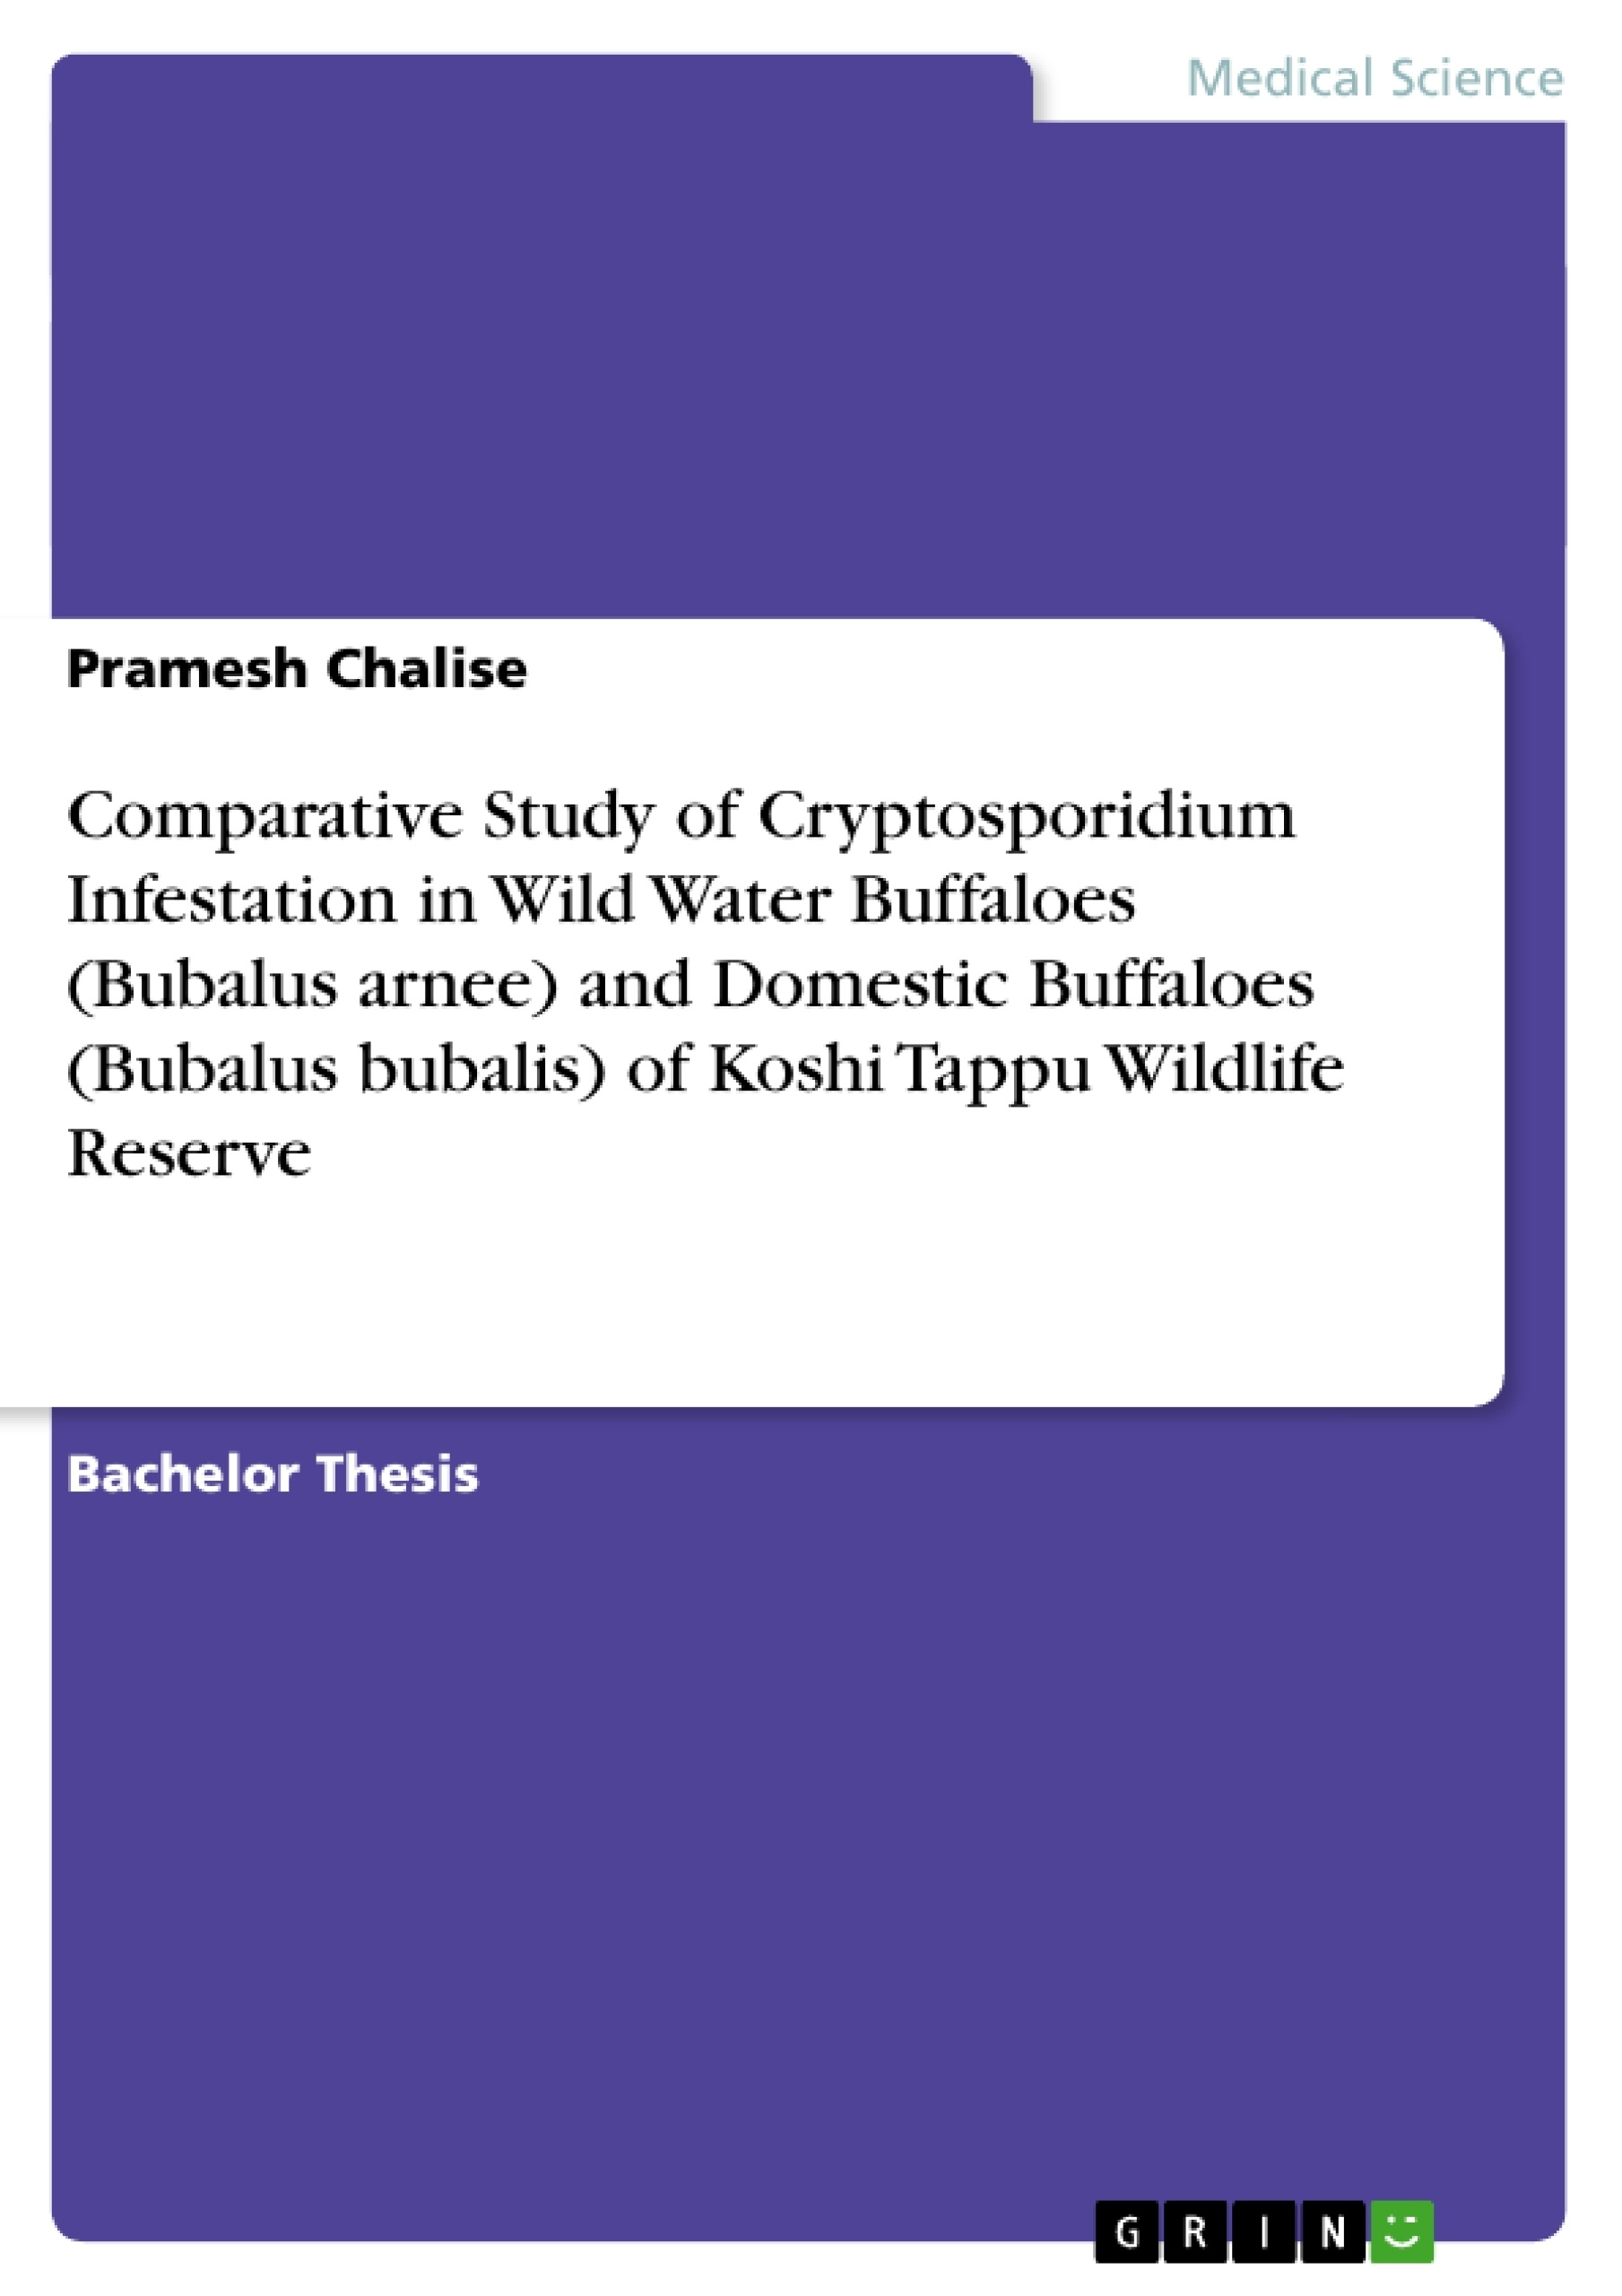 Title: Comparative Study of Cryptosporidium Infestation  in Wild Water Buffaloes (Bubalus arnee) and  Domestic Buffaloes (Bubalus bubalis) of  Koshi Tappu Wildlife Reserve